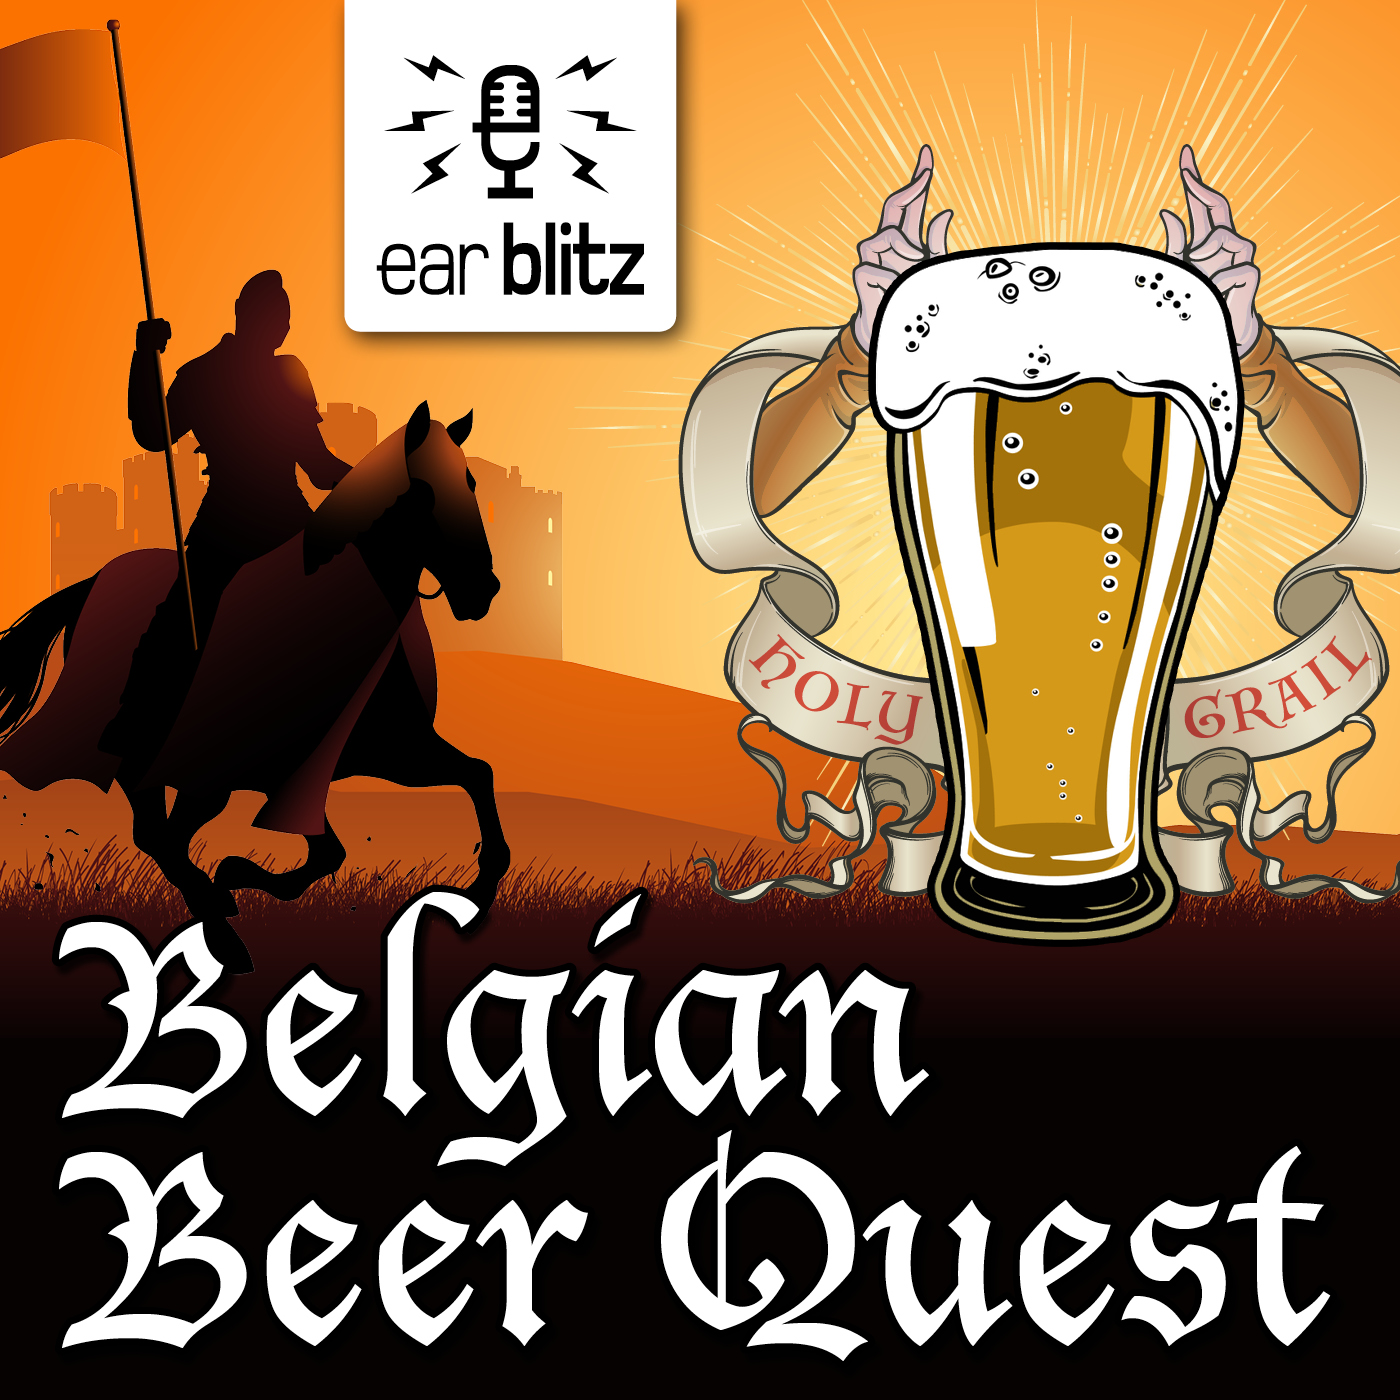 Belgian Beer Quest - Happy Holidays